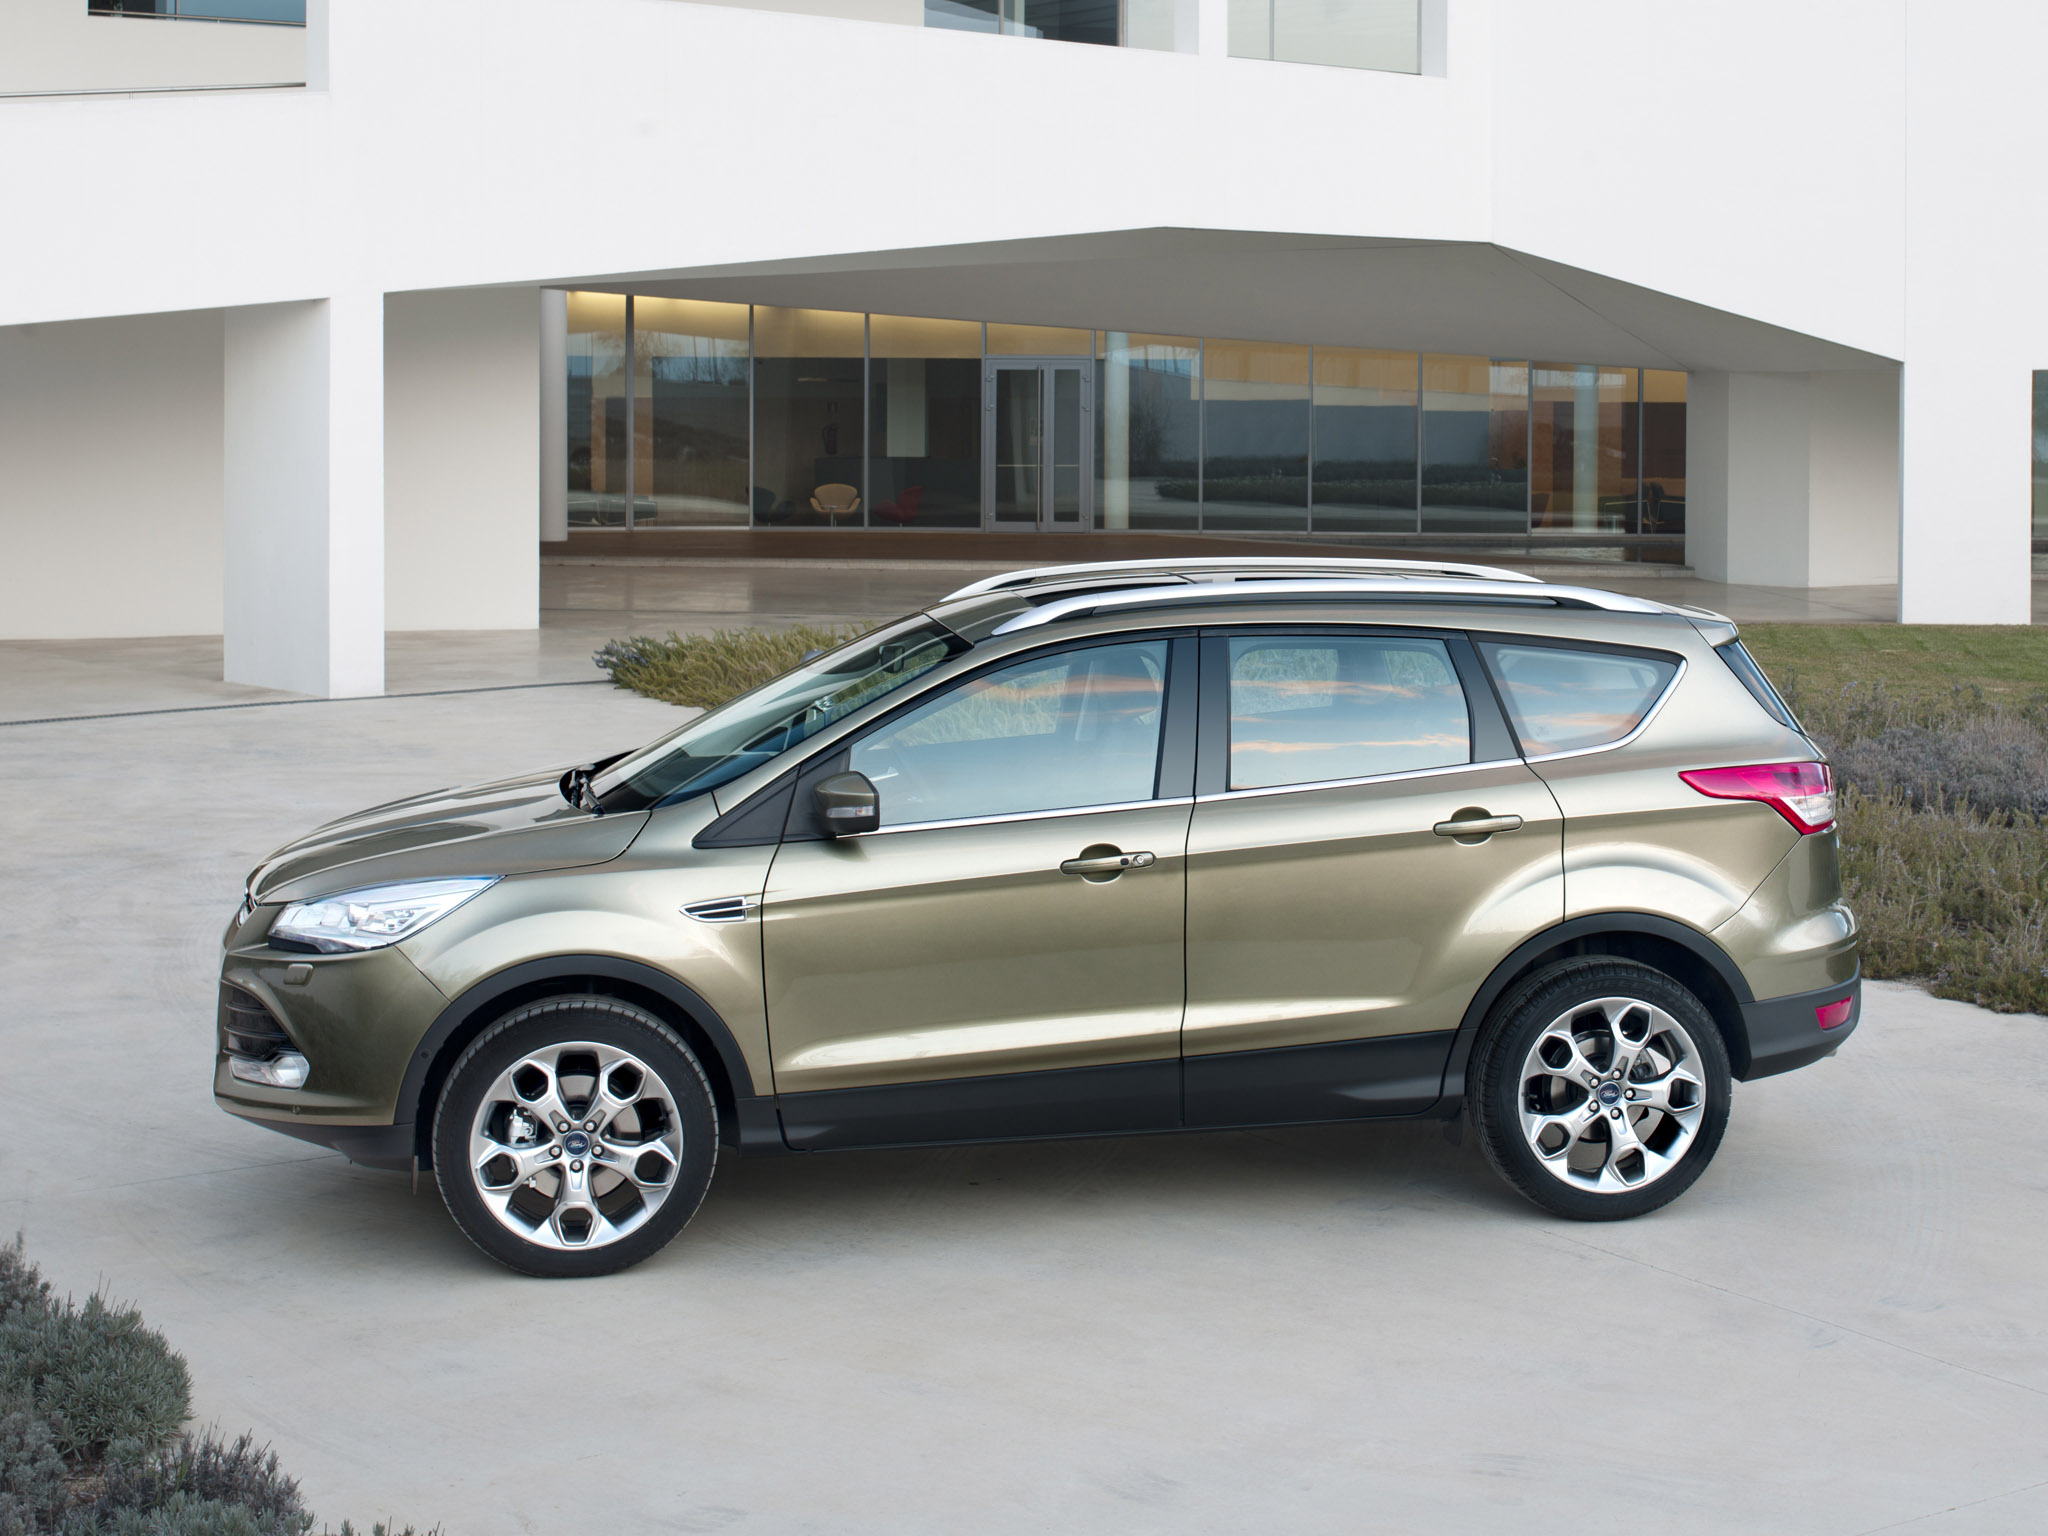 ford kuga 2012 ford kuga 2012 photo 20 car in pictures car photo gallery. Black Bedroom Furniture Sets. Home Design Ideas